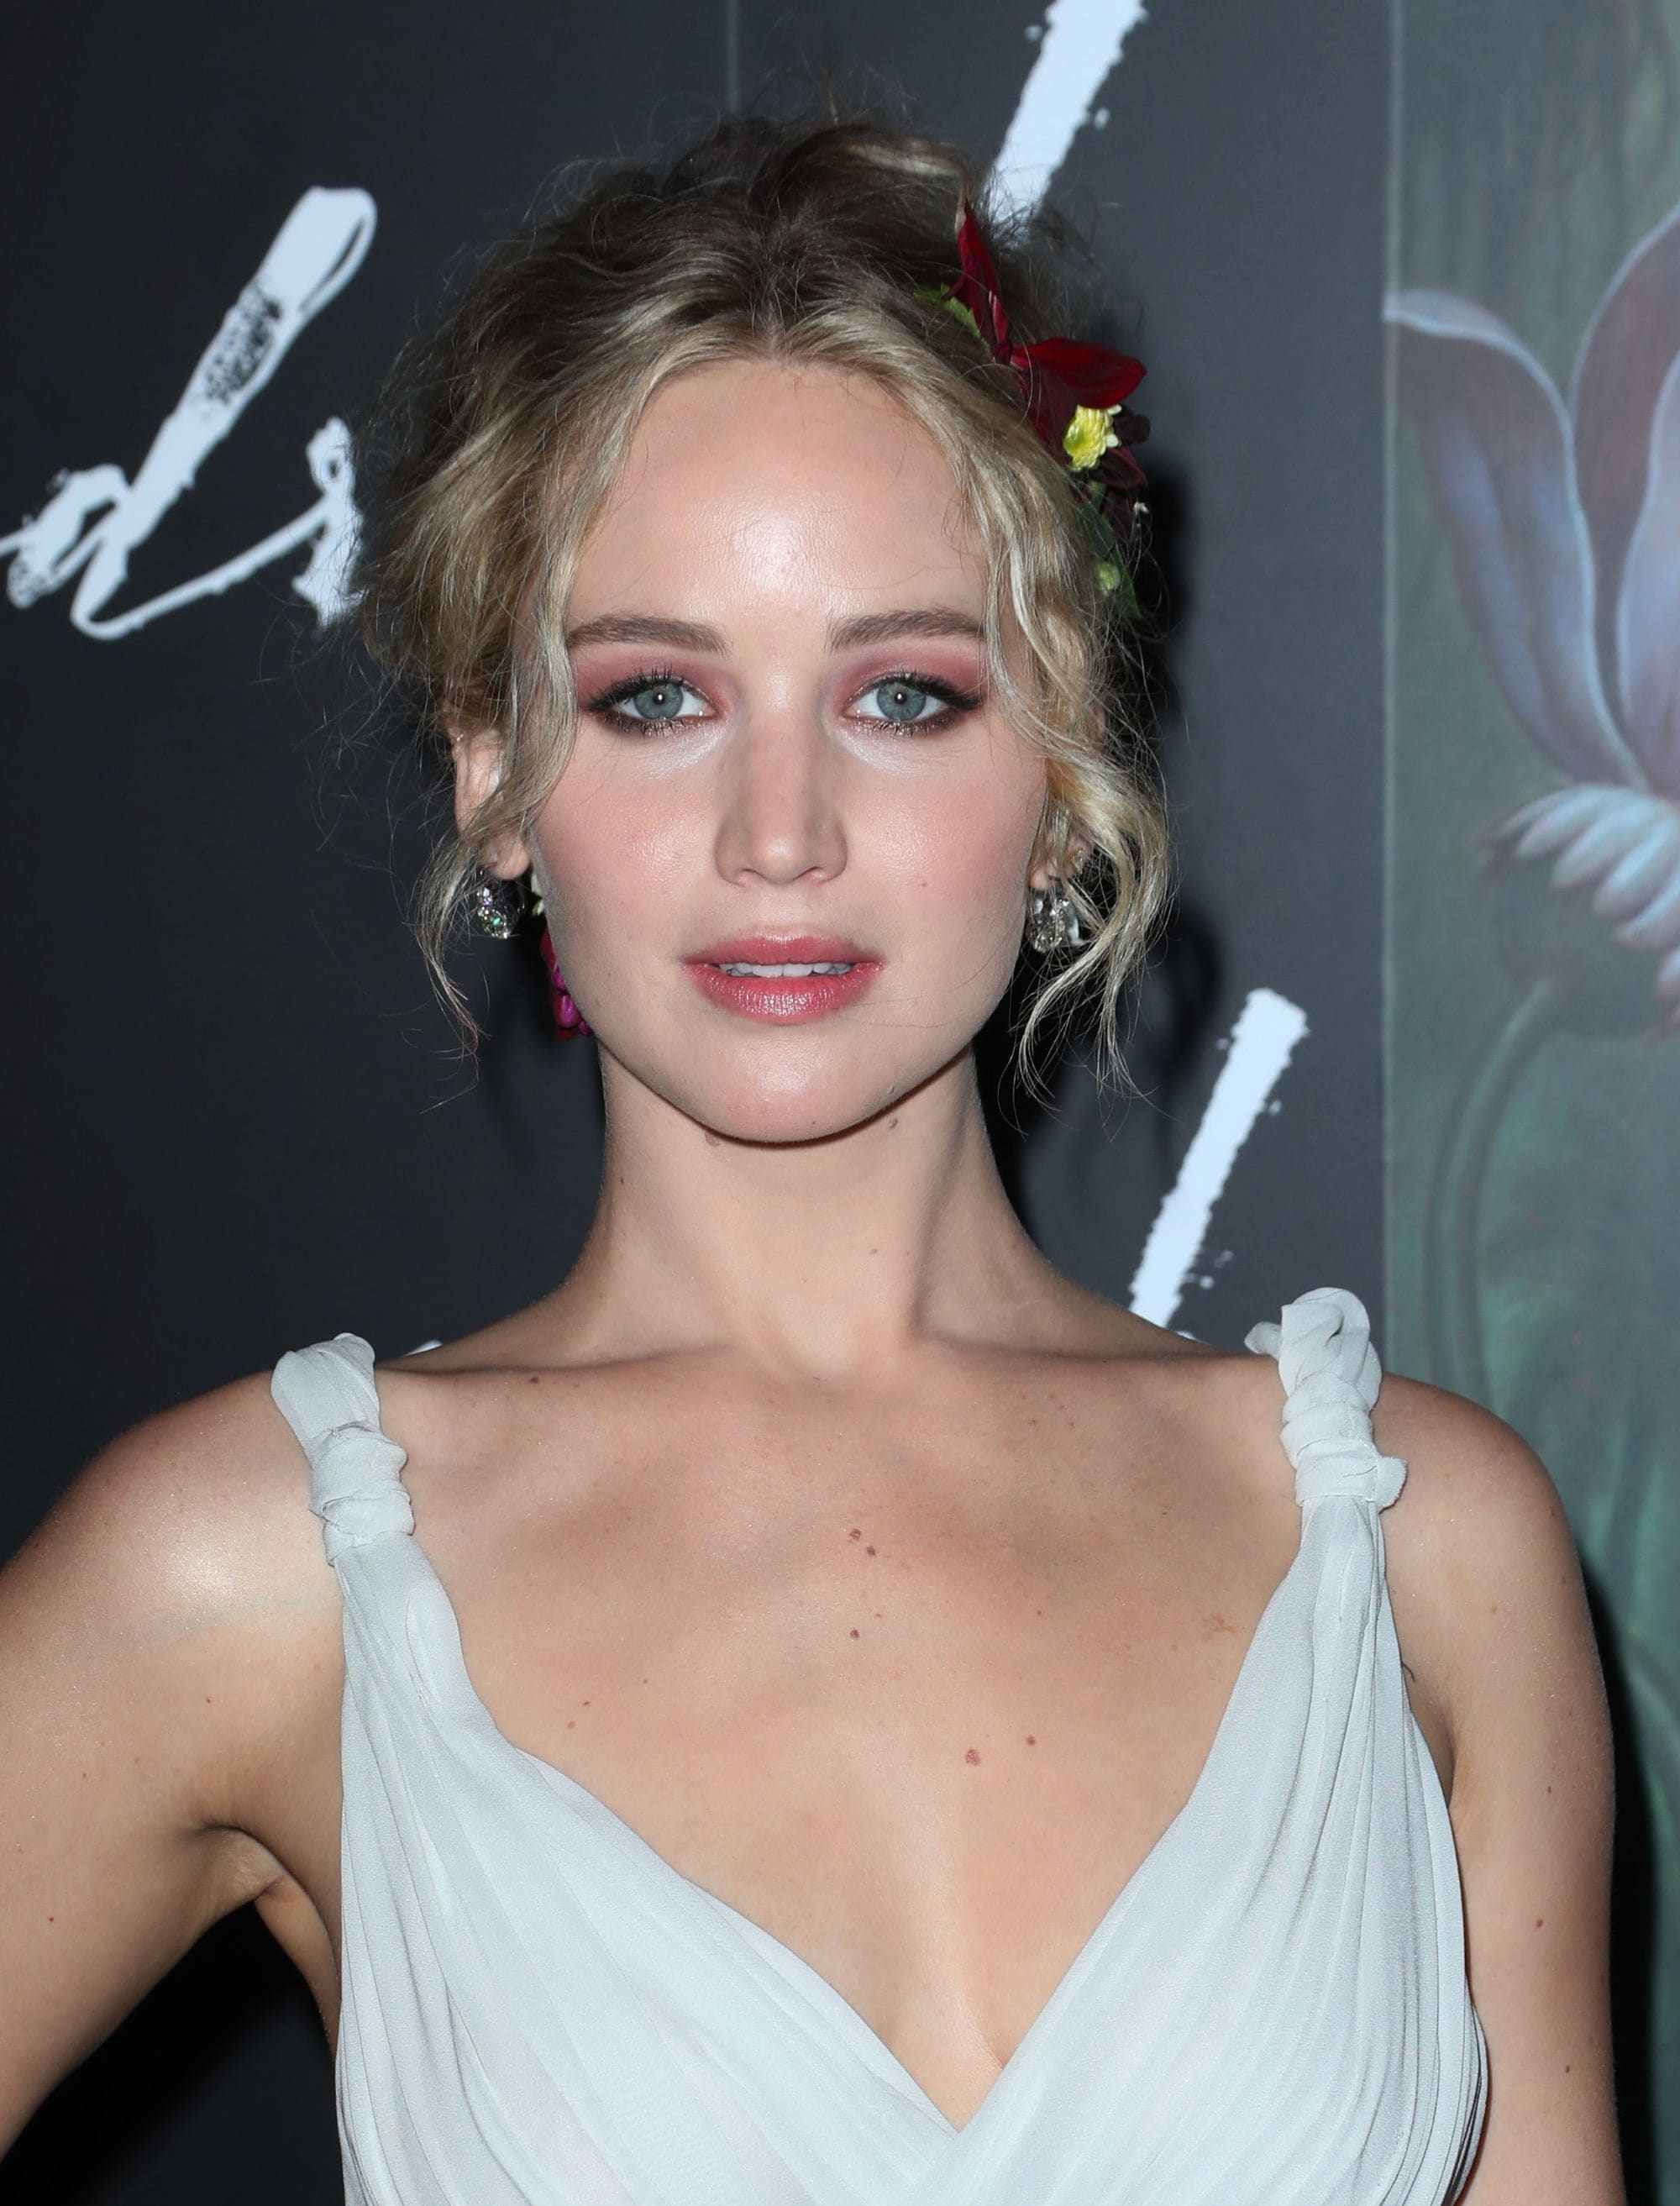 Jennifer Lawrence with dirty blonde hair styled into a messy updo with flowers